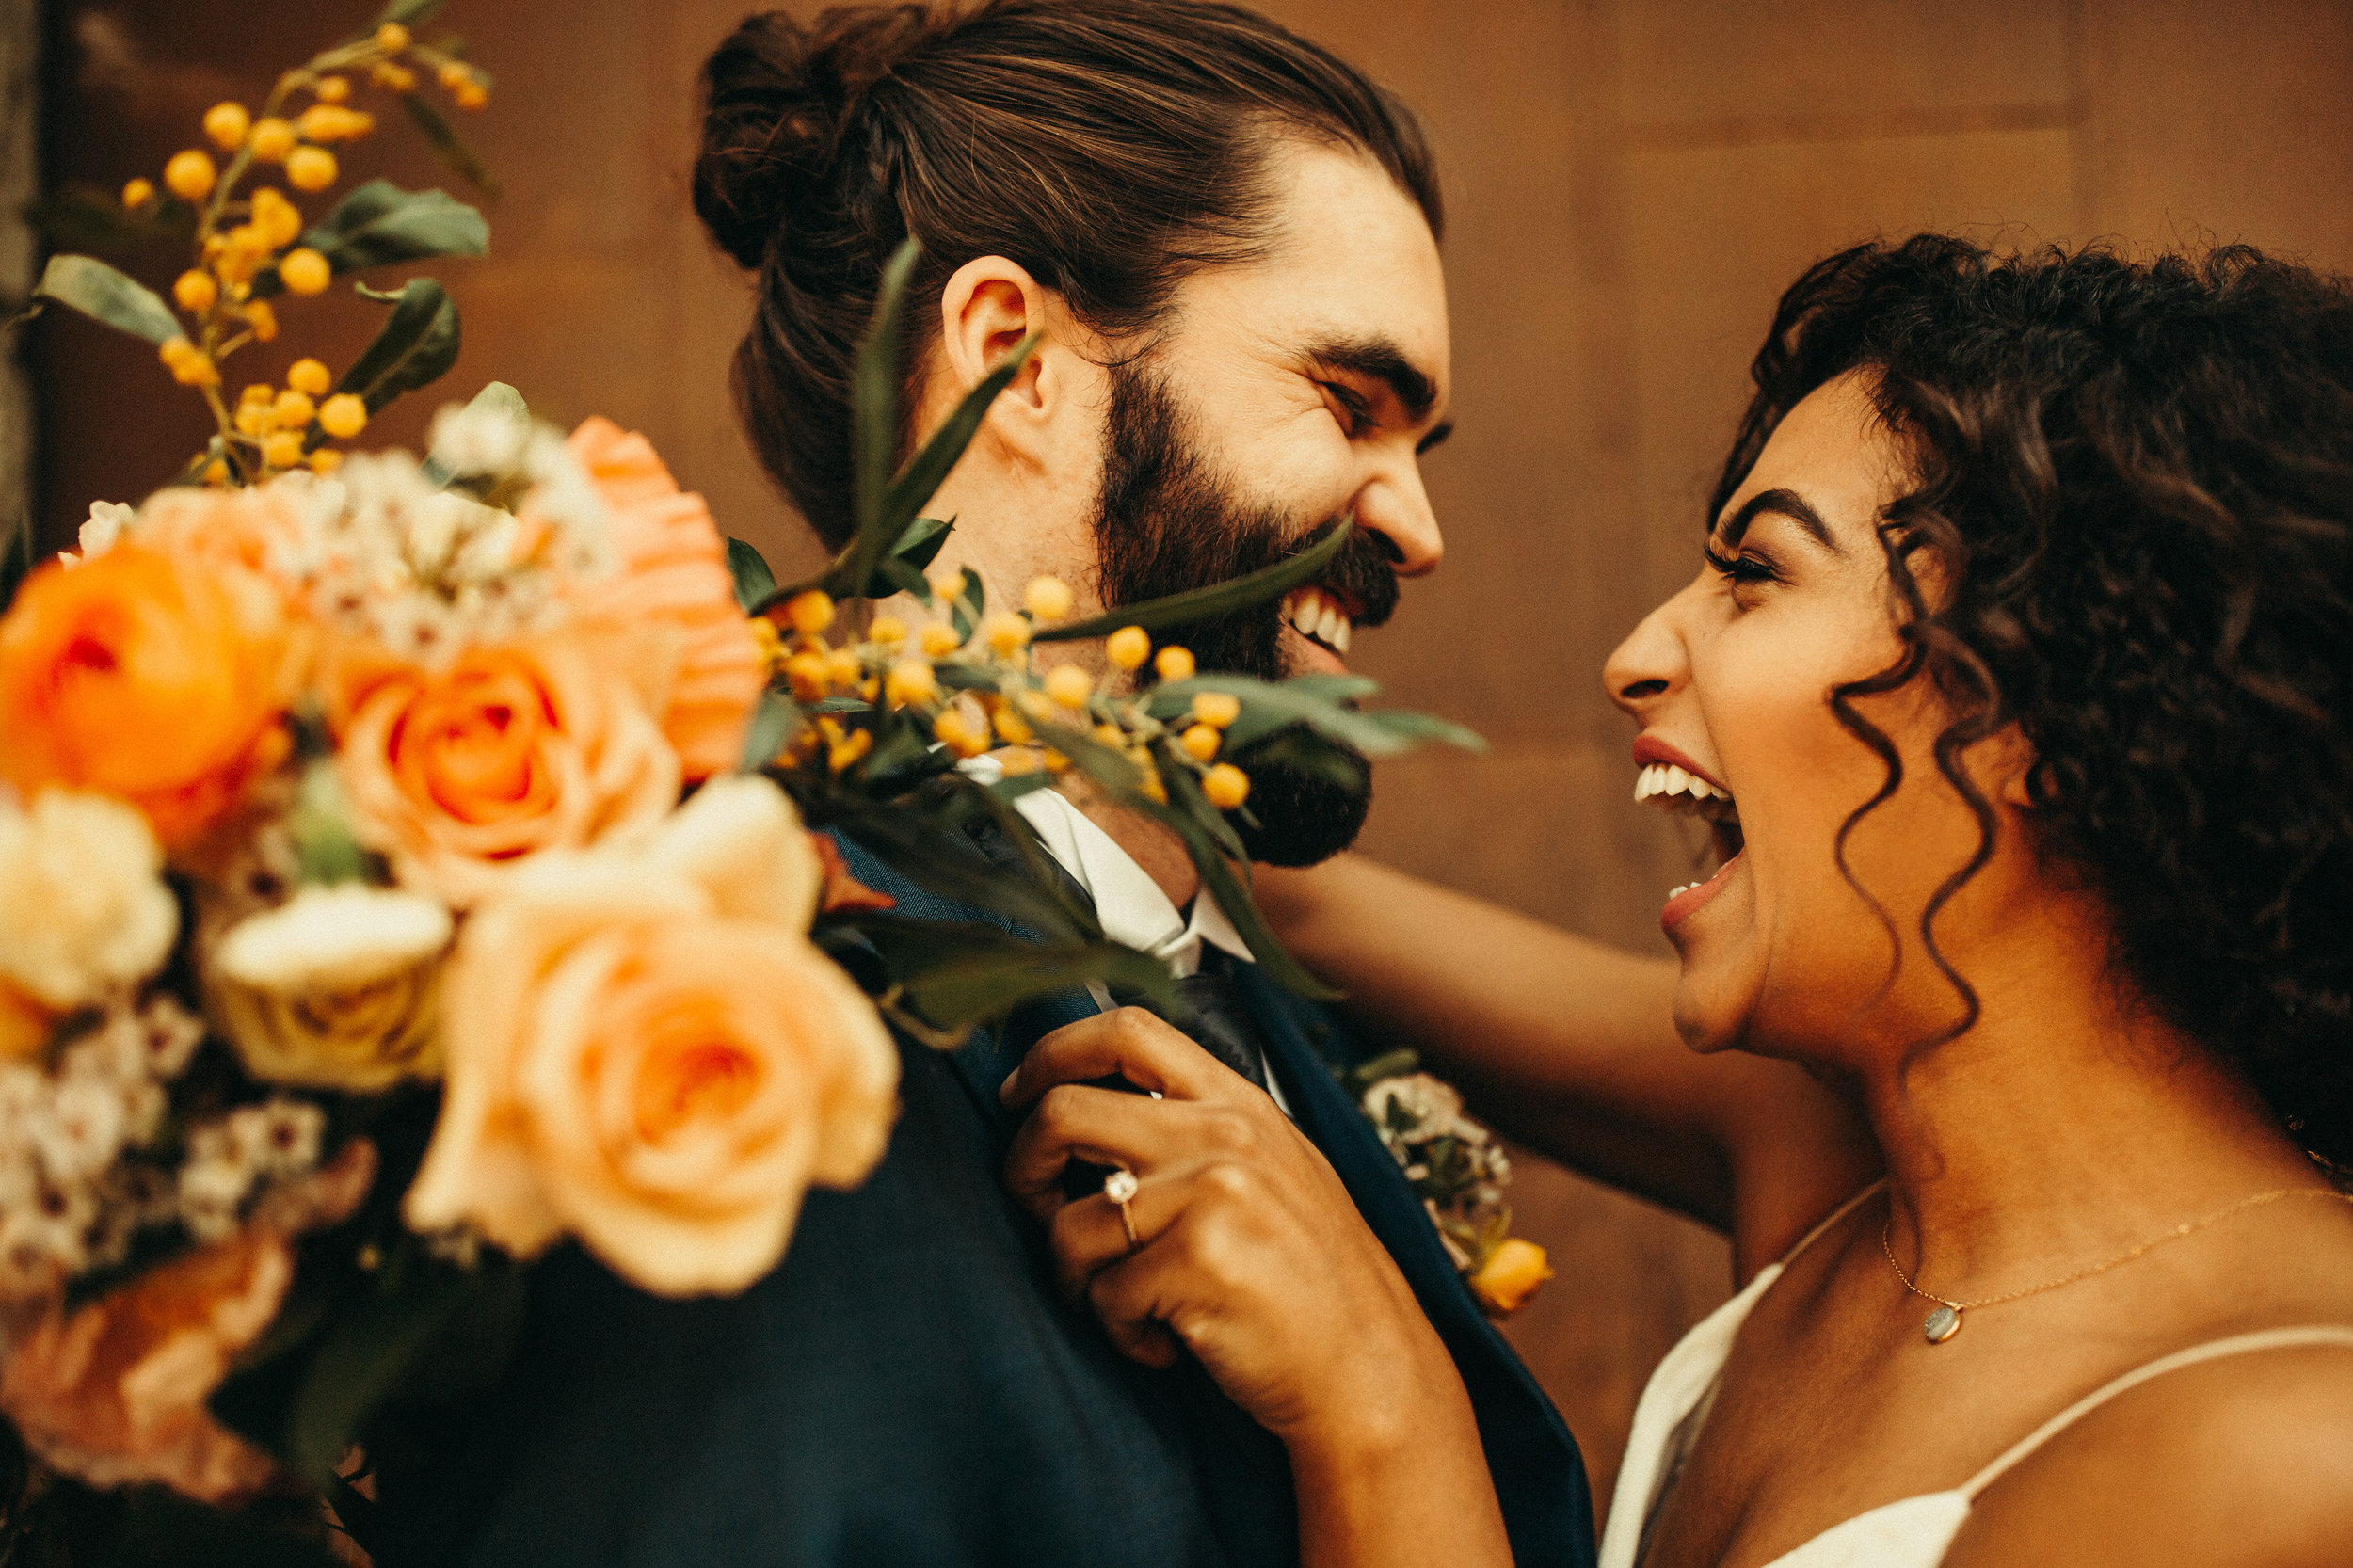 Stunning Sustainability - Photography by Olivia MarkleAs seen in Green Wedding Shoes & Bride and Tonic